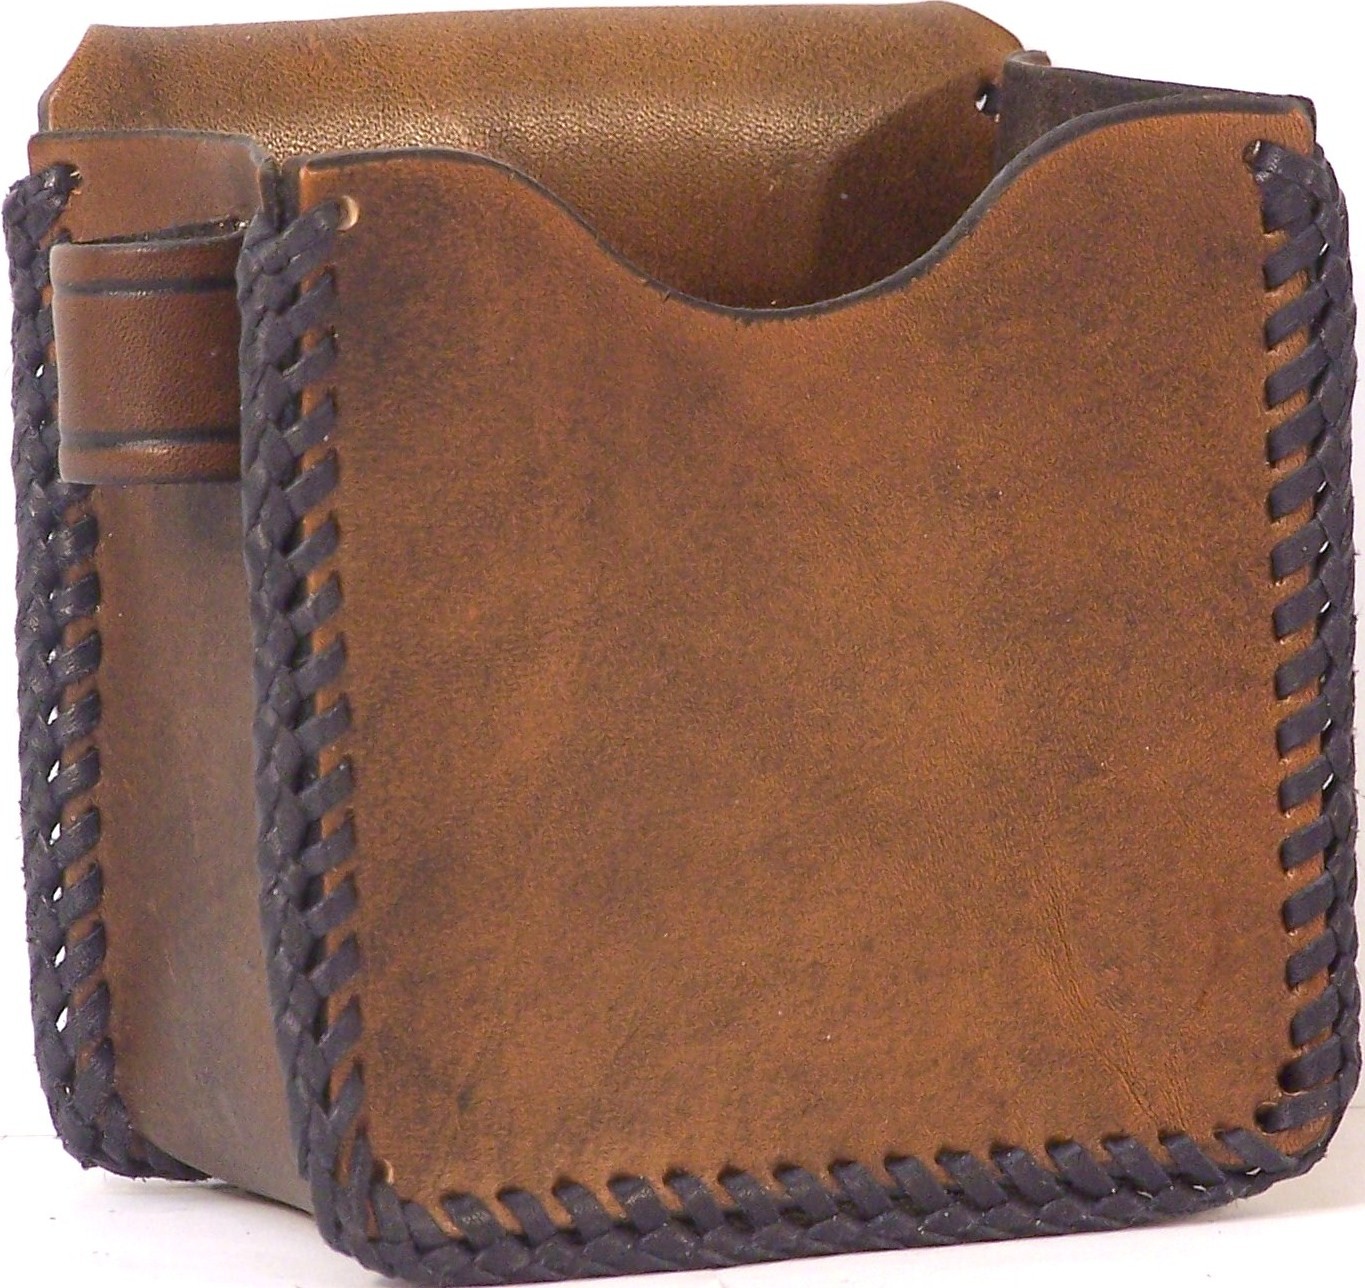 Shamrock Leathers 1-Box Carrier Leather shotshell box holder, 1-box carrier